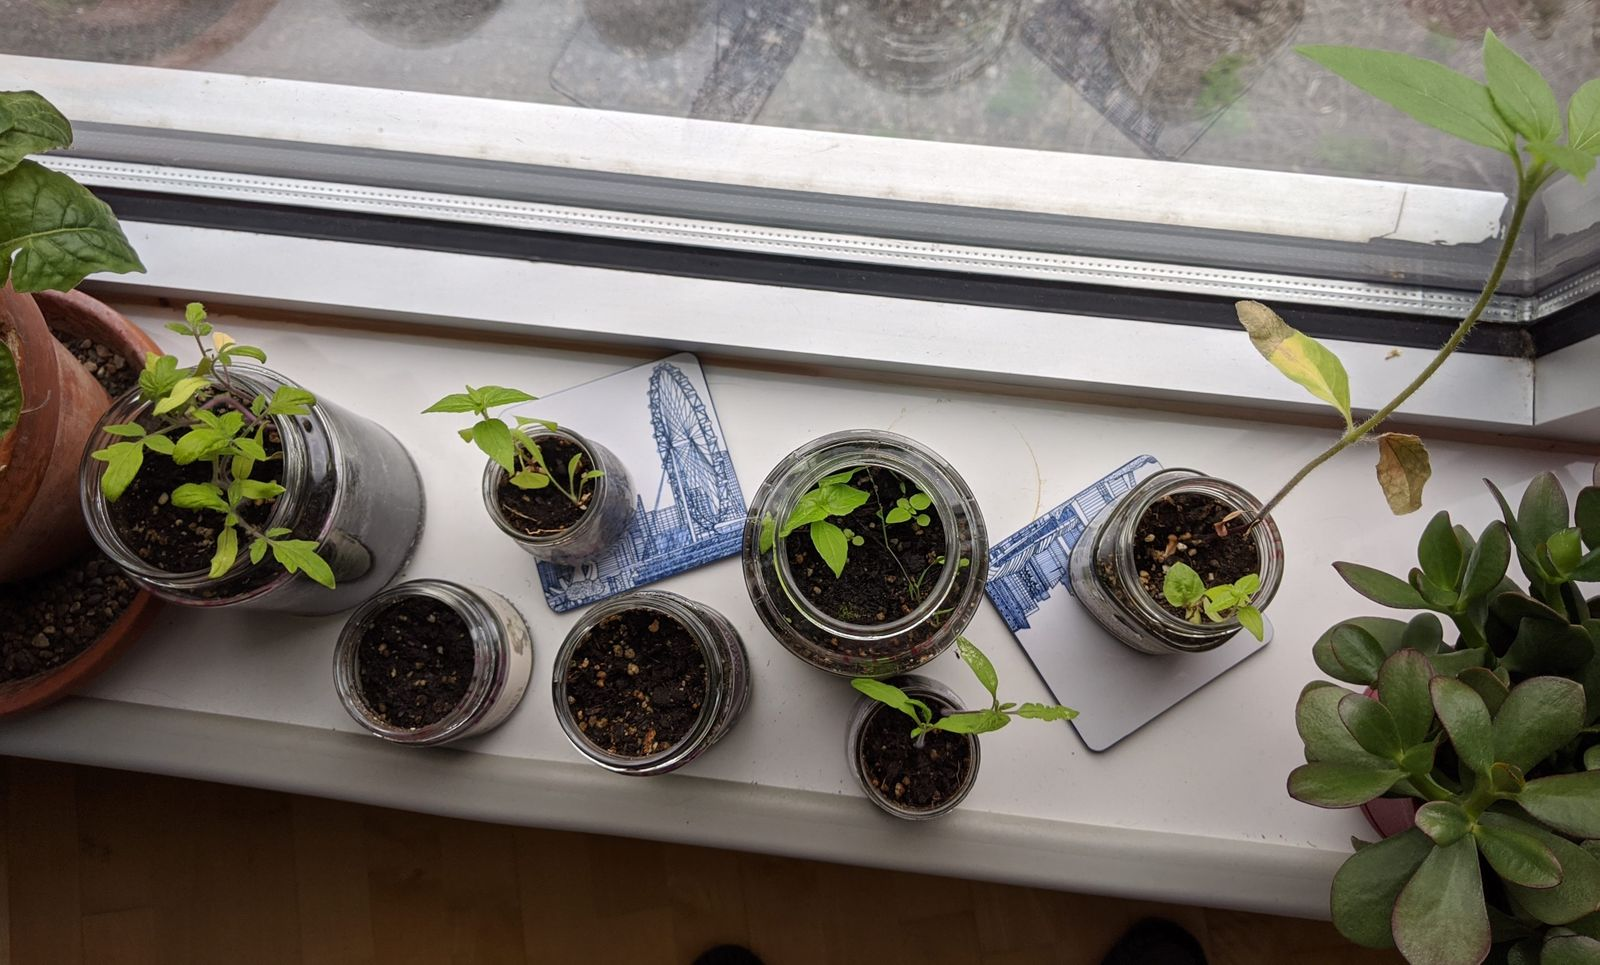 Apparently pickle, sauerkraut, prunes, and olive jars work great for growing seeds!